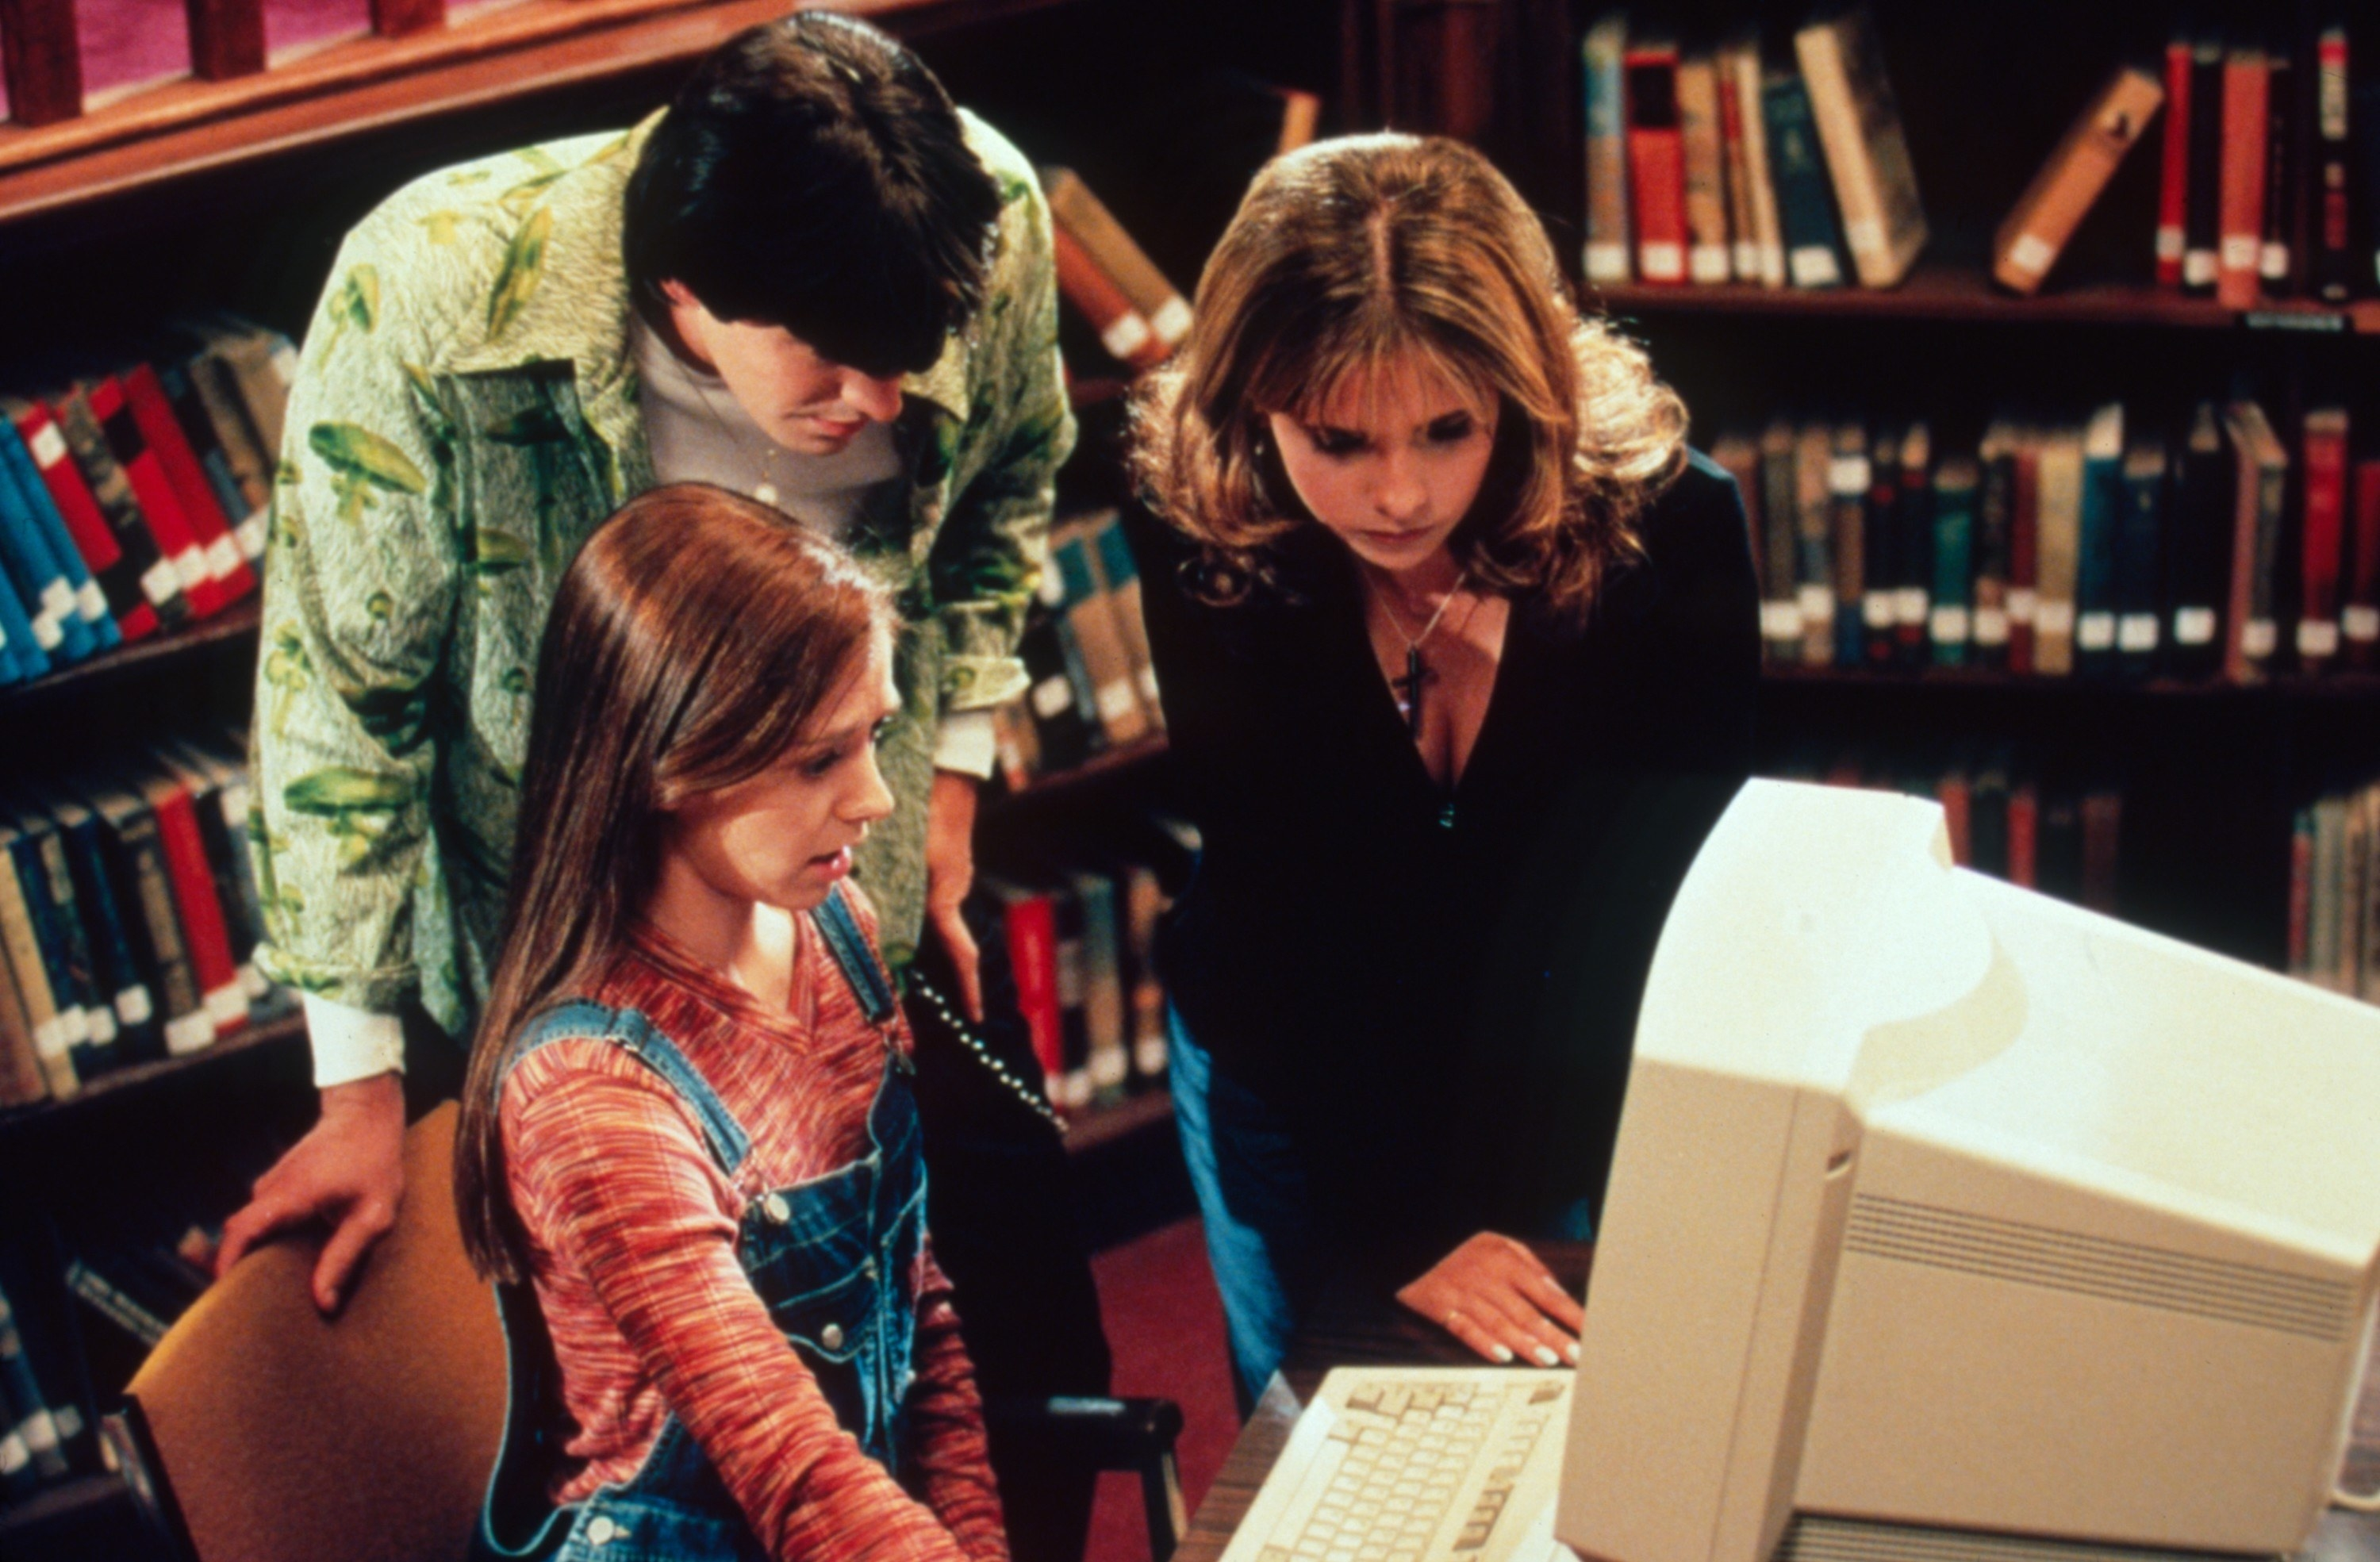 Buffy, Willow, and Xander look at a computer in front of a bookcase